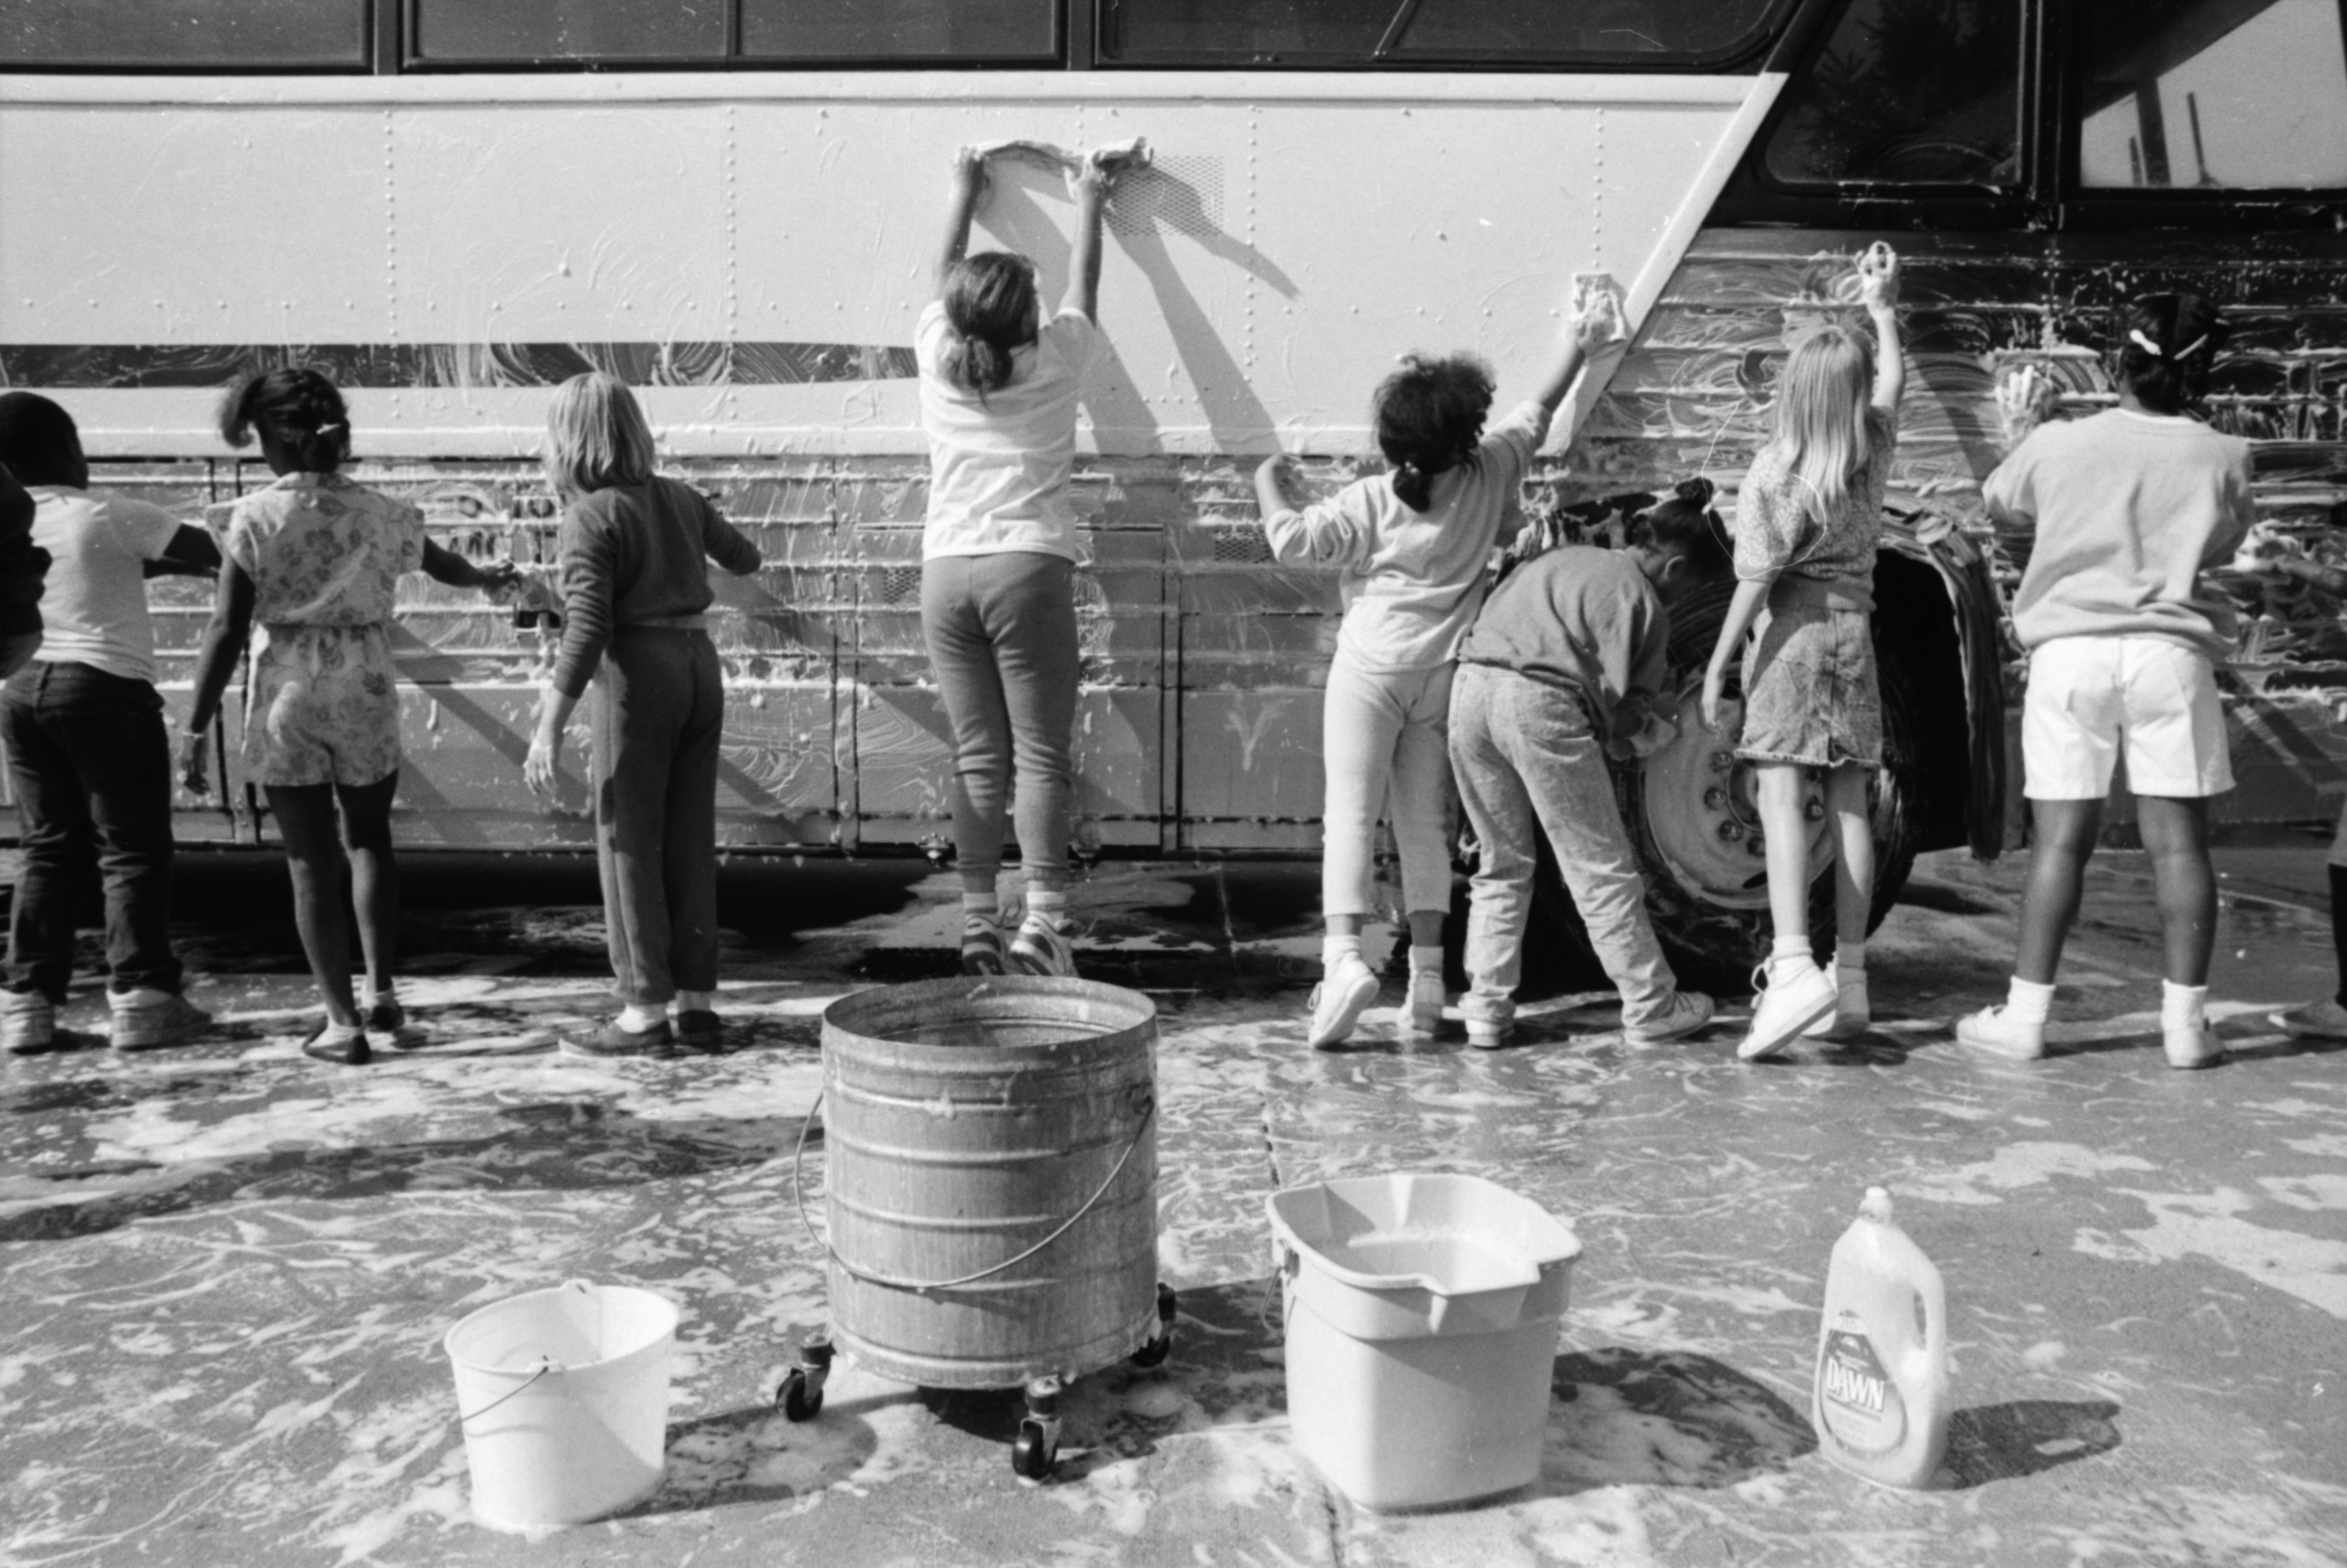 Children Scrub Bus to Raise Money for Peace Neighborhood Center Summer Camp, May 1988 image